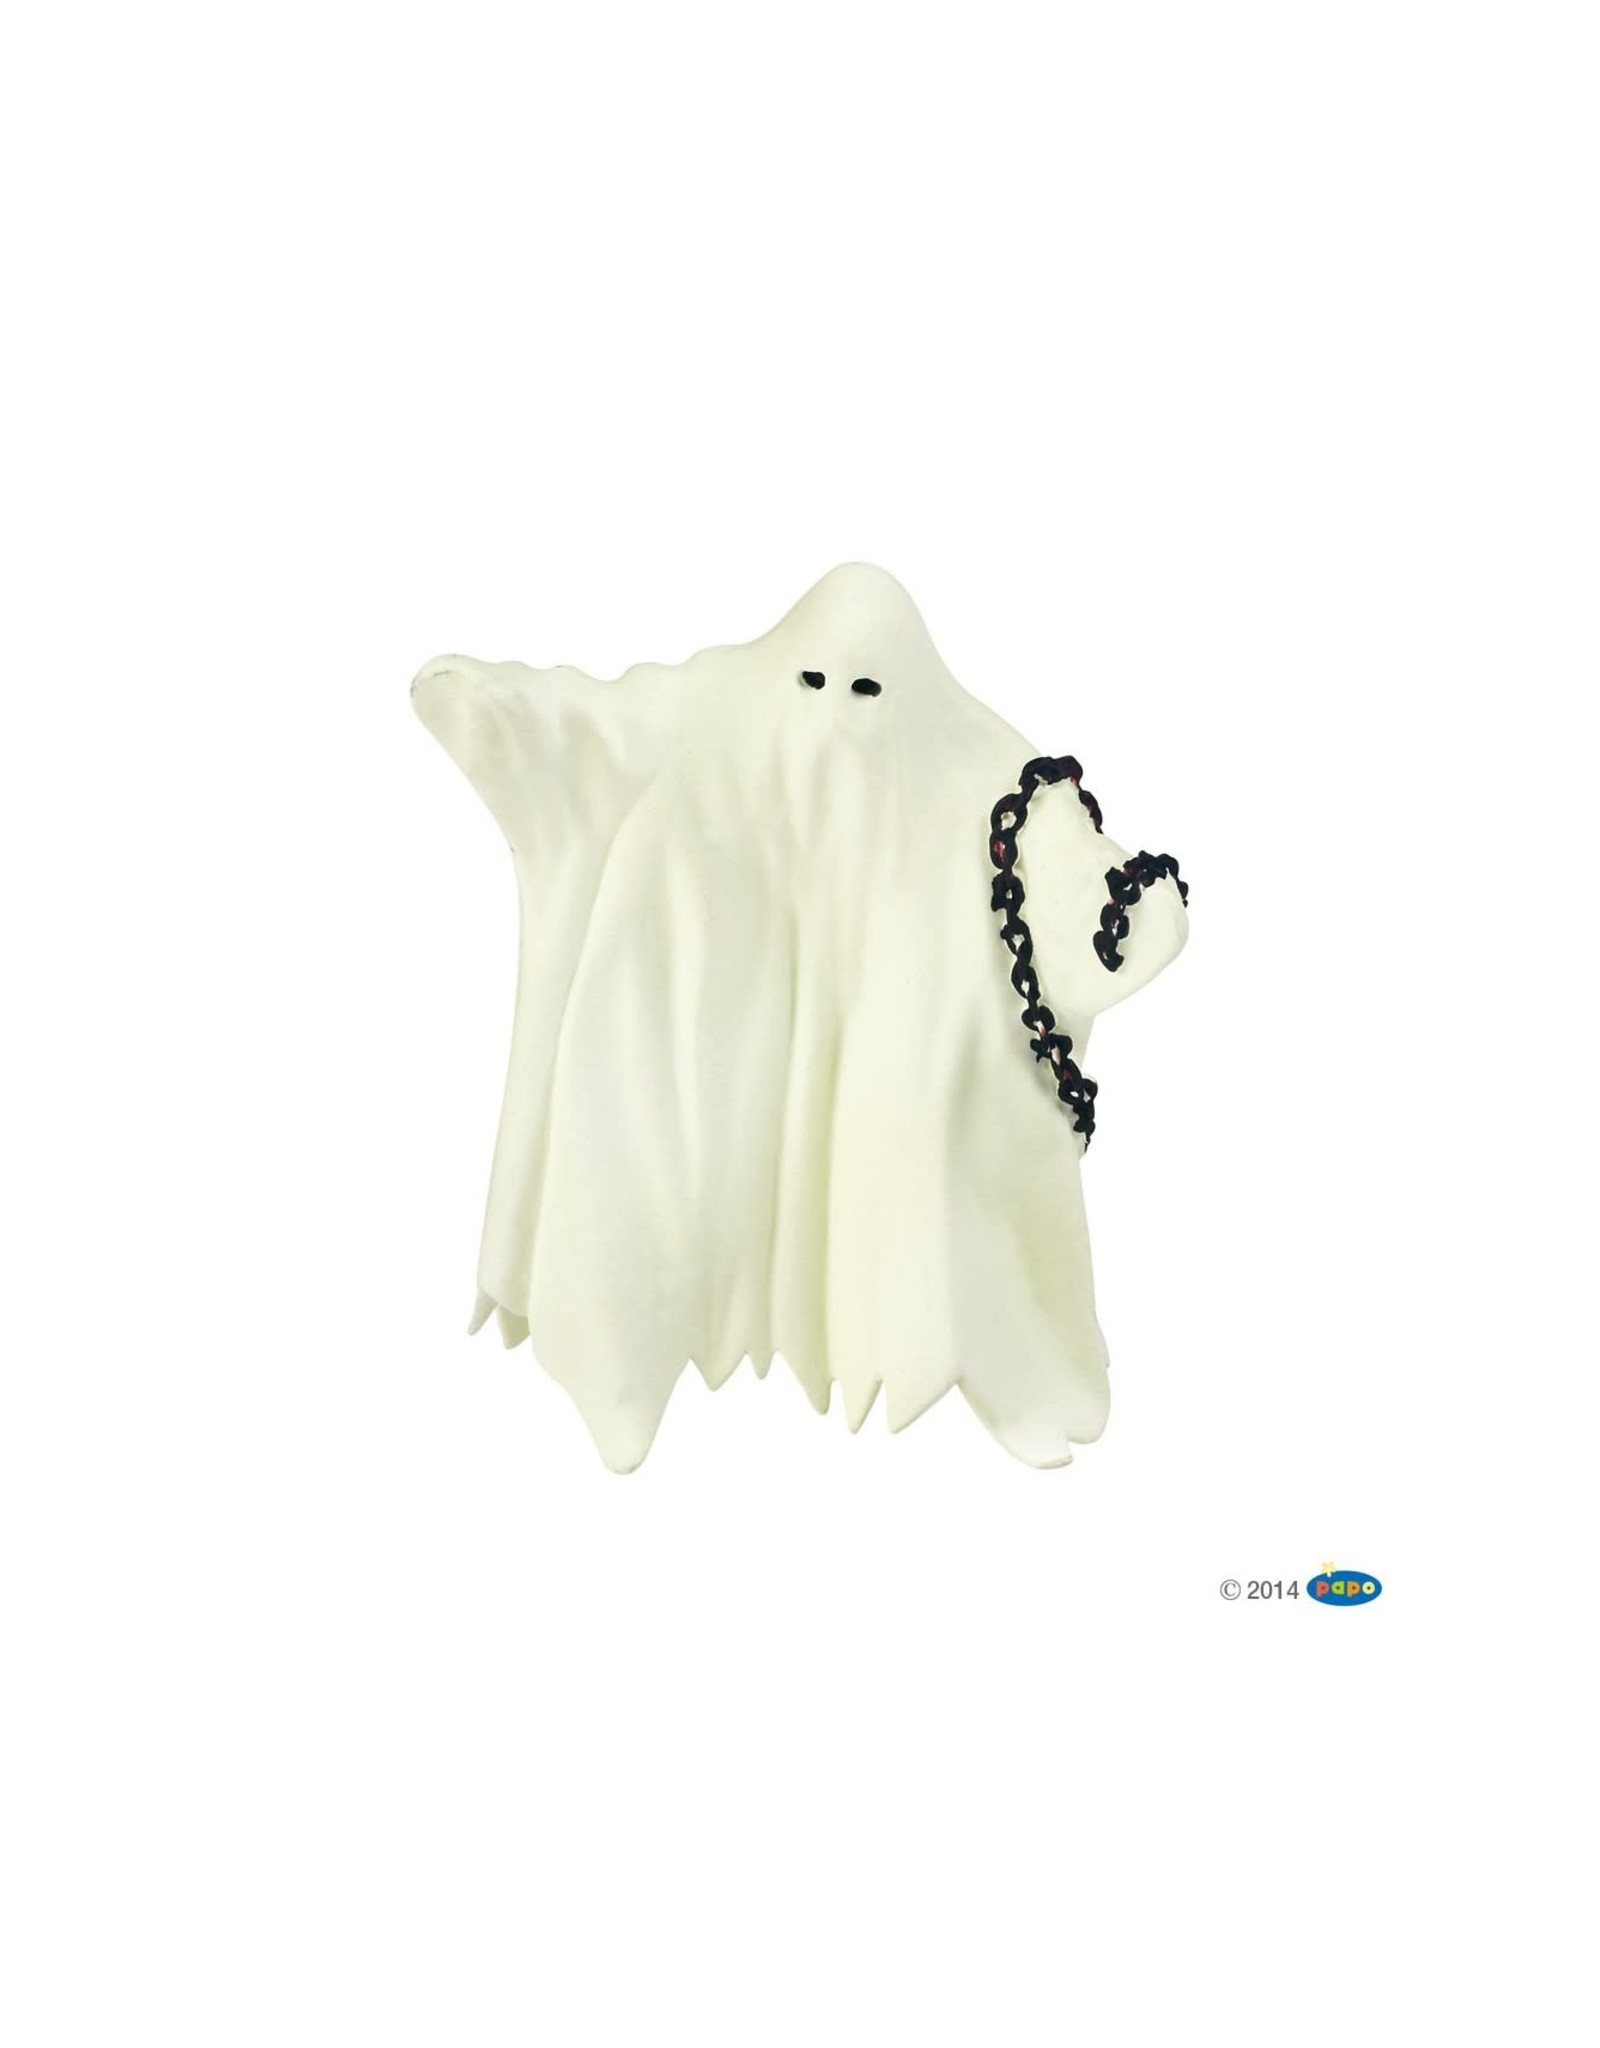 Papo Papo Ghost (glows in the dark)